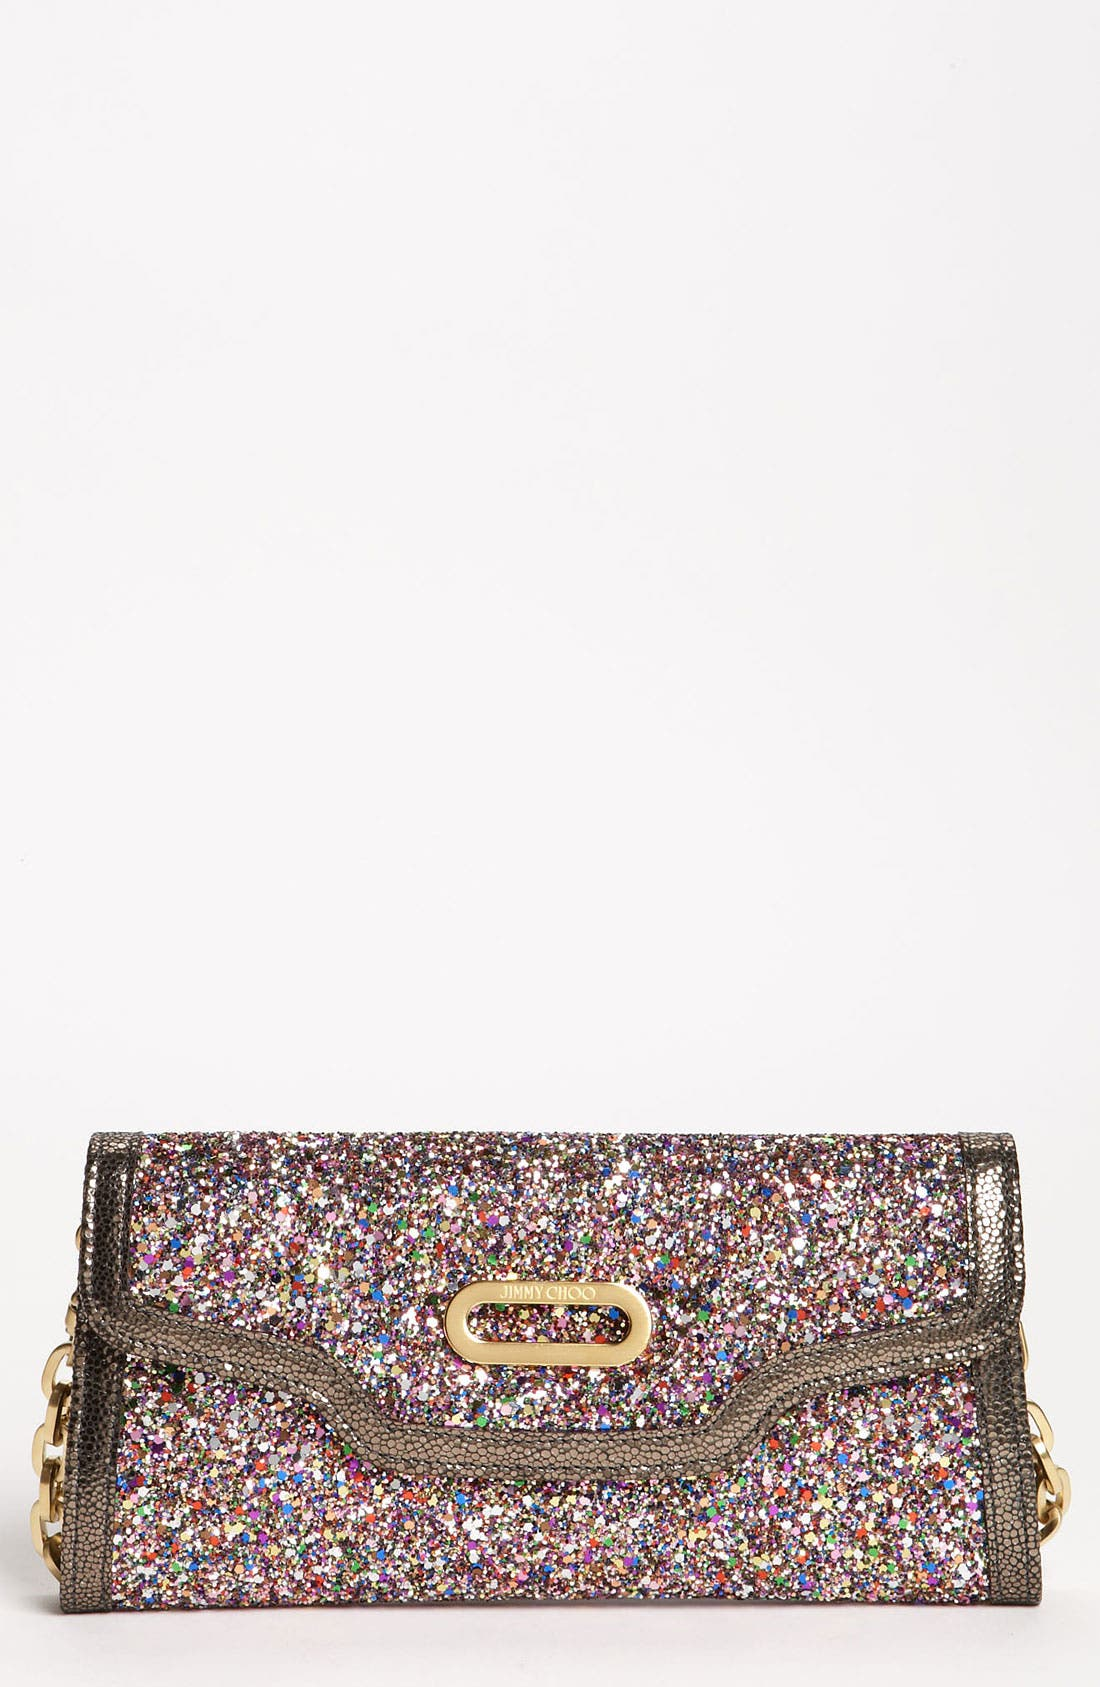 Alternate Image 1 Selected - Jimmy Choo Glitter Clutch